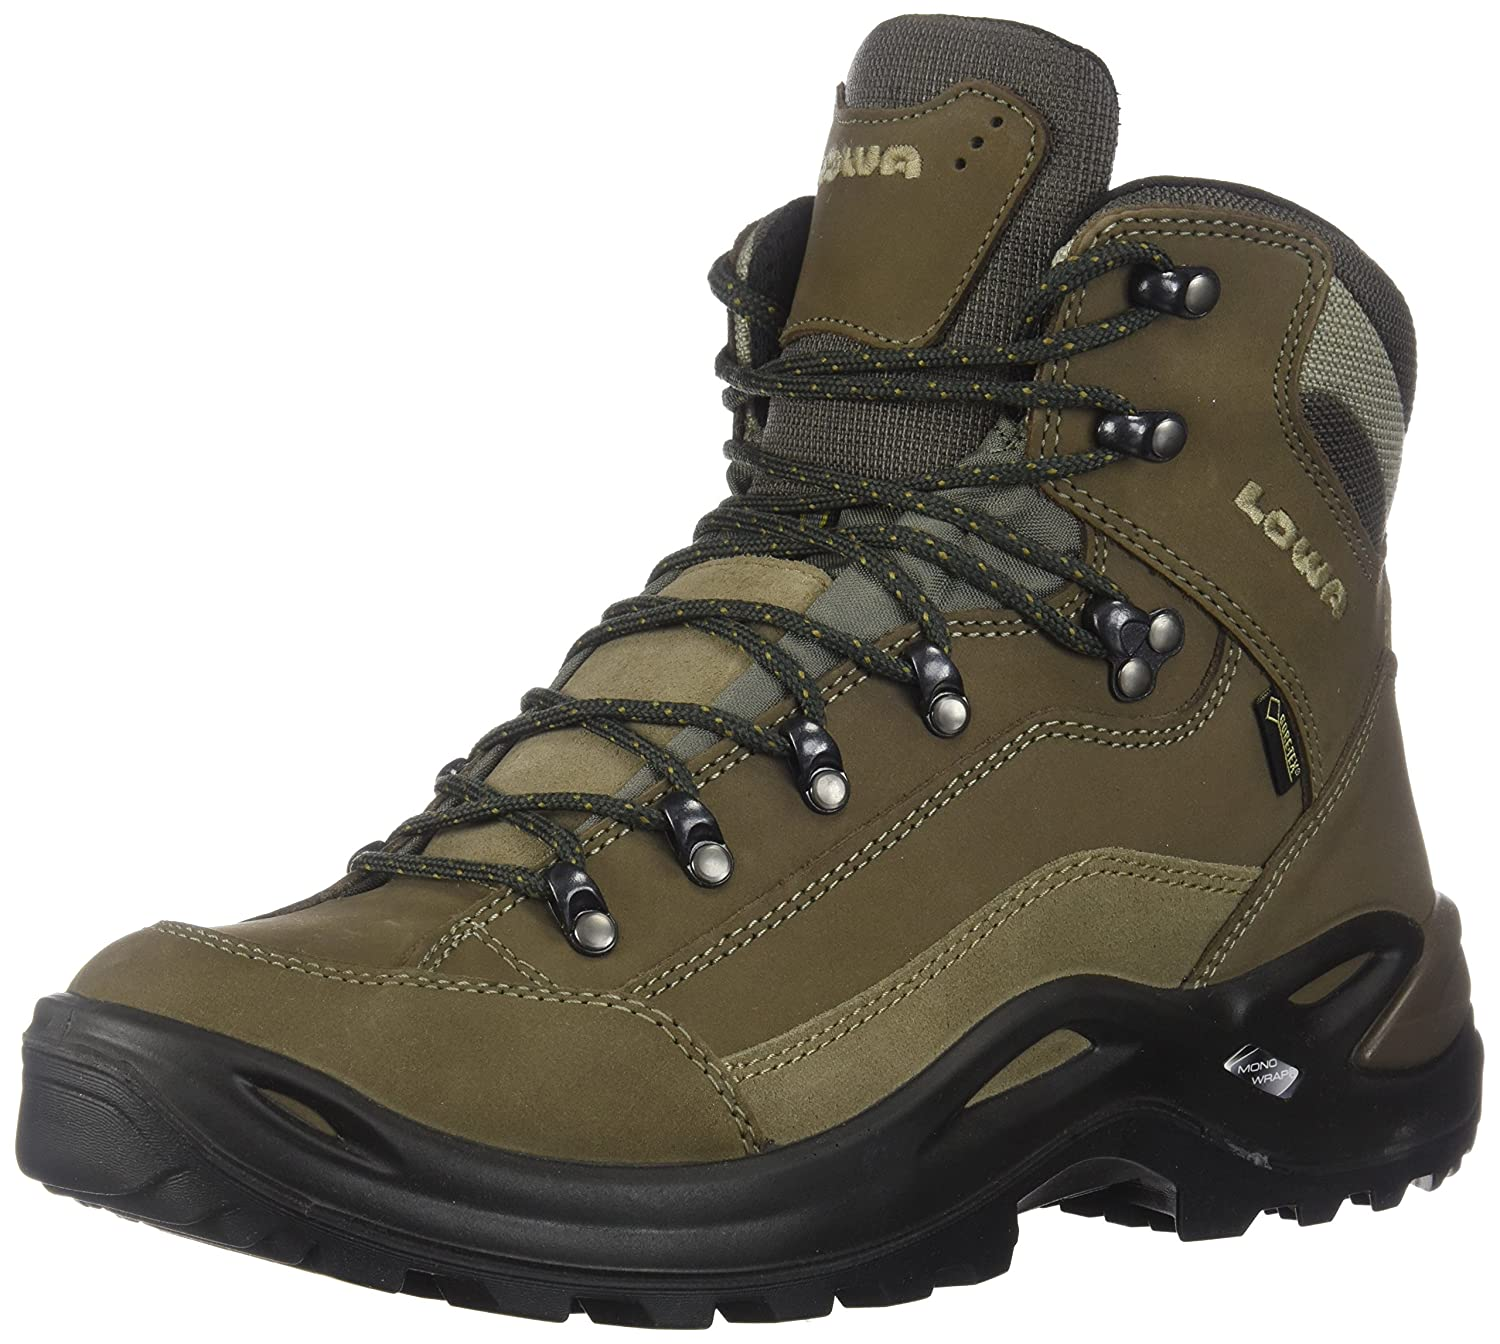 Lowa Women's Renegade GTX Mid Hiking Boot B002MPPVIC 5.5 B(M) US|Stone